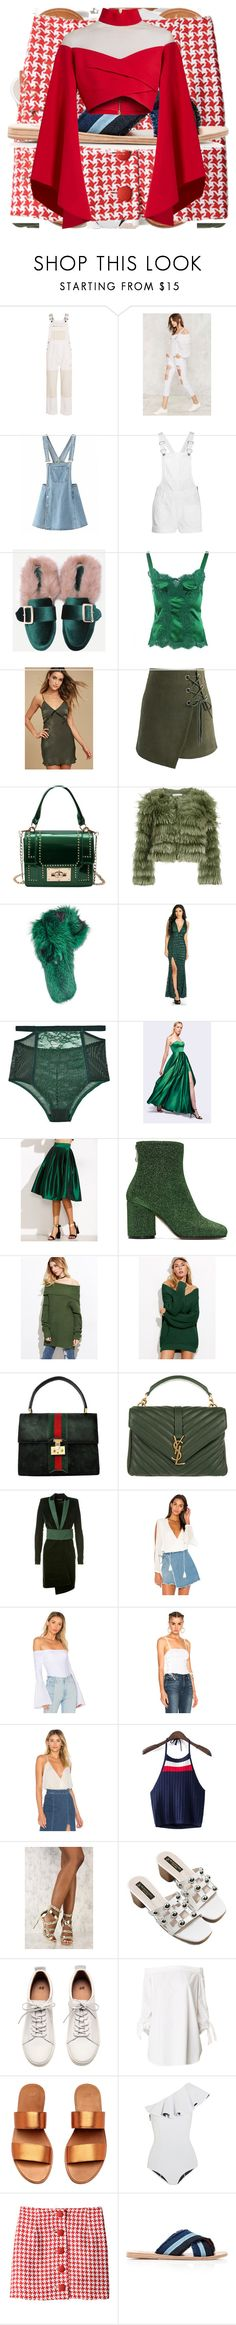 """""""4th/Xmas"""" by queenet ❤ liked on Polyvore featuring Sea, New York, Madewell, Dolce&Gabbana, LULUS, Chicwish, Alice + Olivia, Lilly e Violetta, Lonely, Fame & Partners and Maison Margiela"""